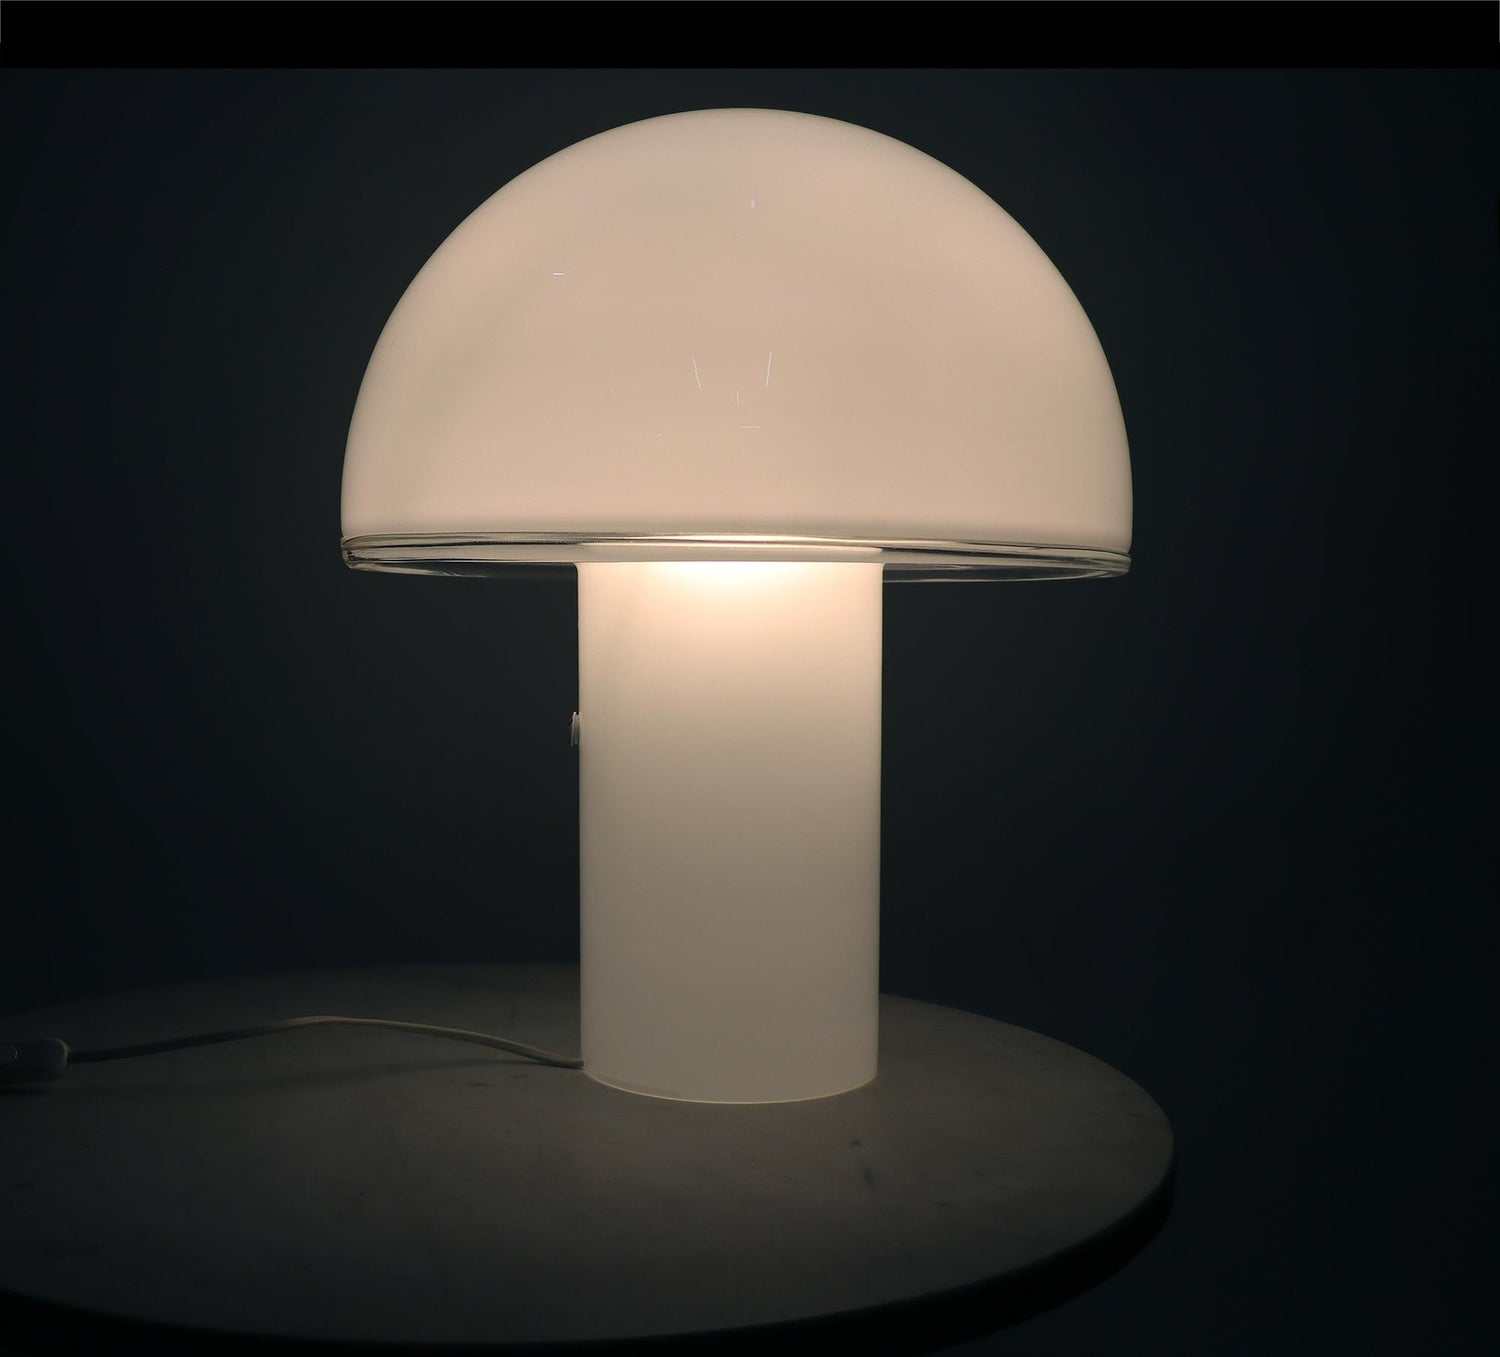 Onfale Big Murano Glass Mushroom Lamp By Luciano Vistosi For